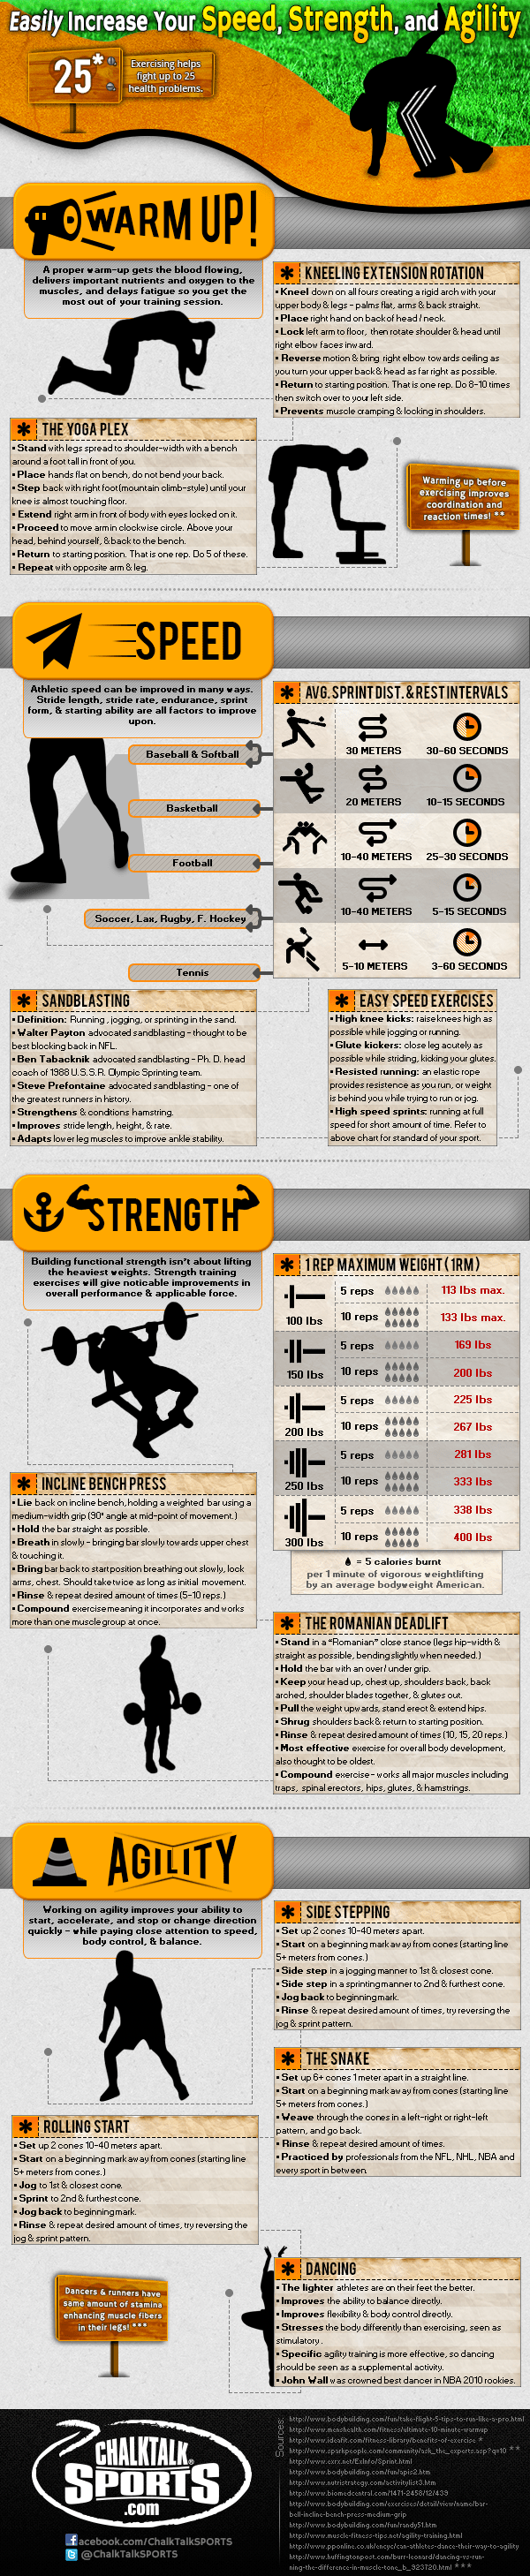 easily-increase-your-speed-strength--agility_51e4c498791dd